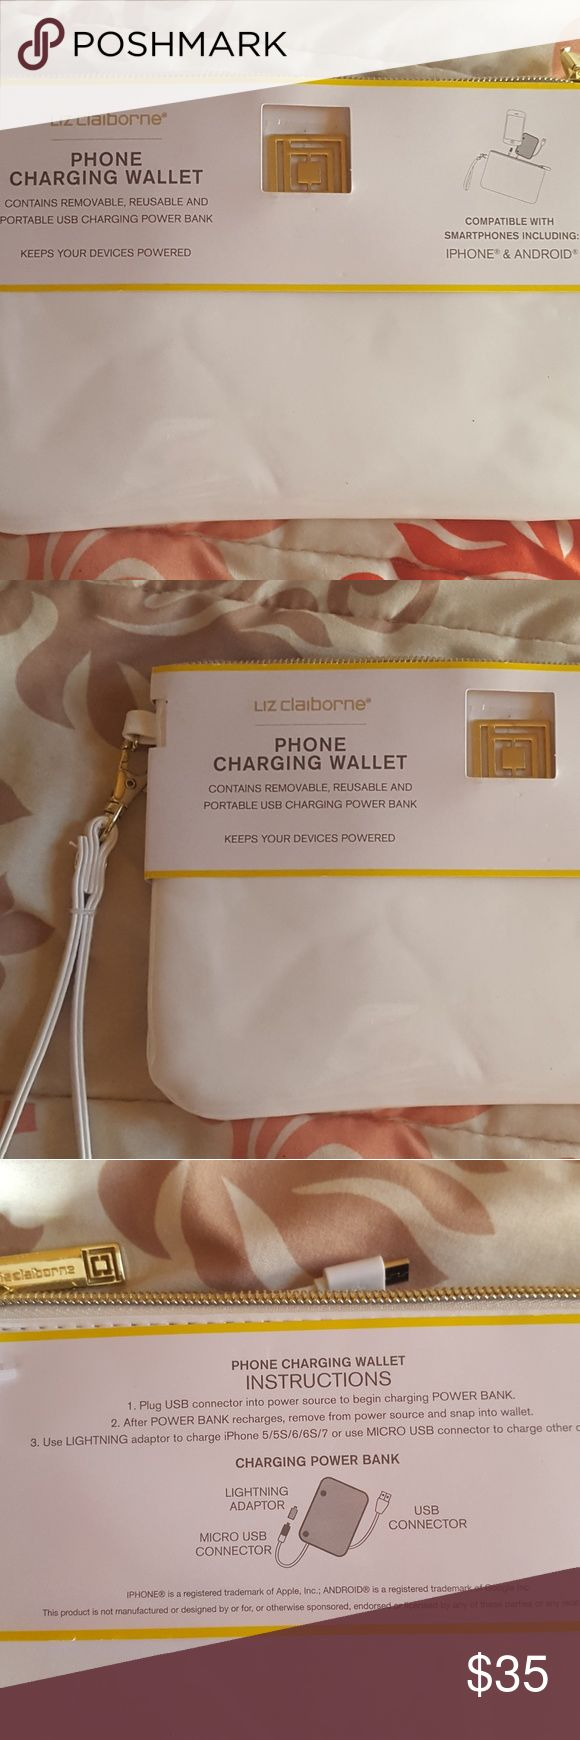 Liz Claiborne phone charging wallet. Pretty white wallet with hand strap and gold logo on front. Contains removable, reusable and portable USB charging power bank.  Compatible with Android and Iphone! Liz Claiborne Bags Clutches & Wristlets